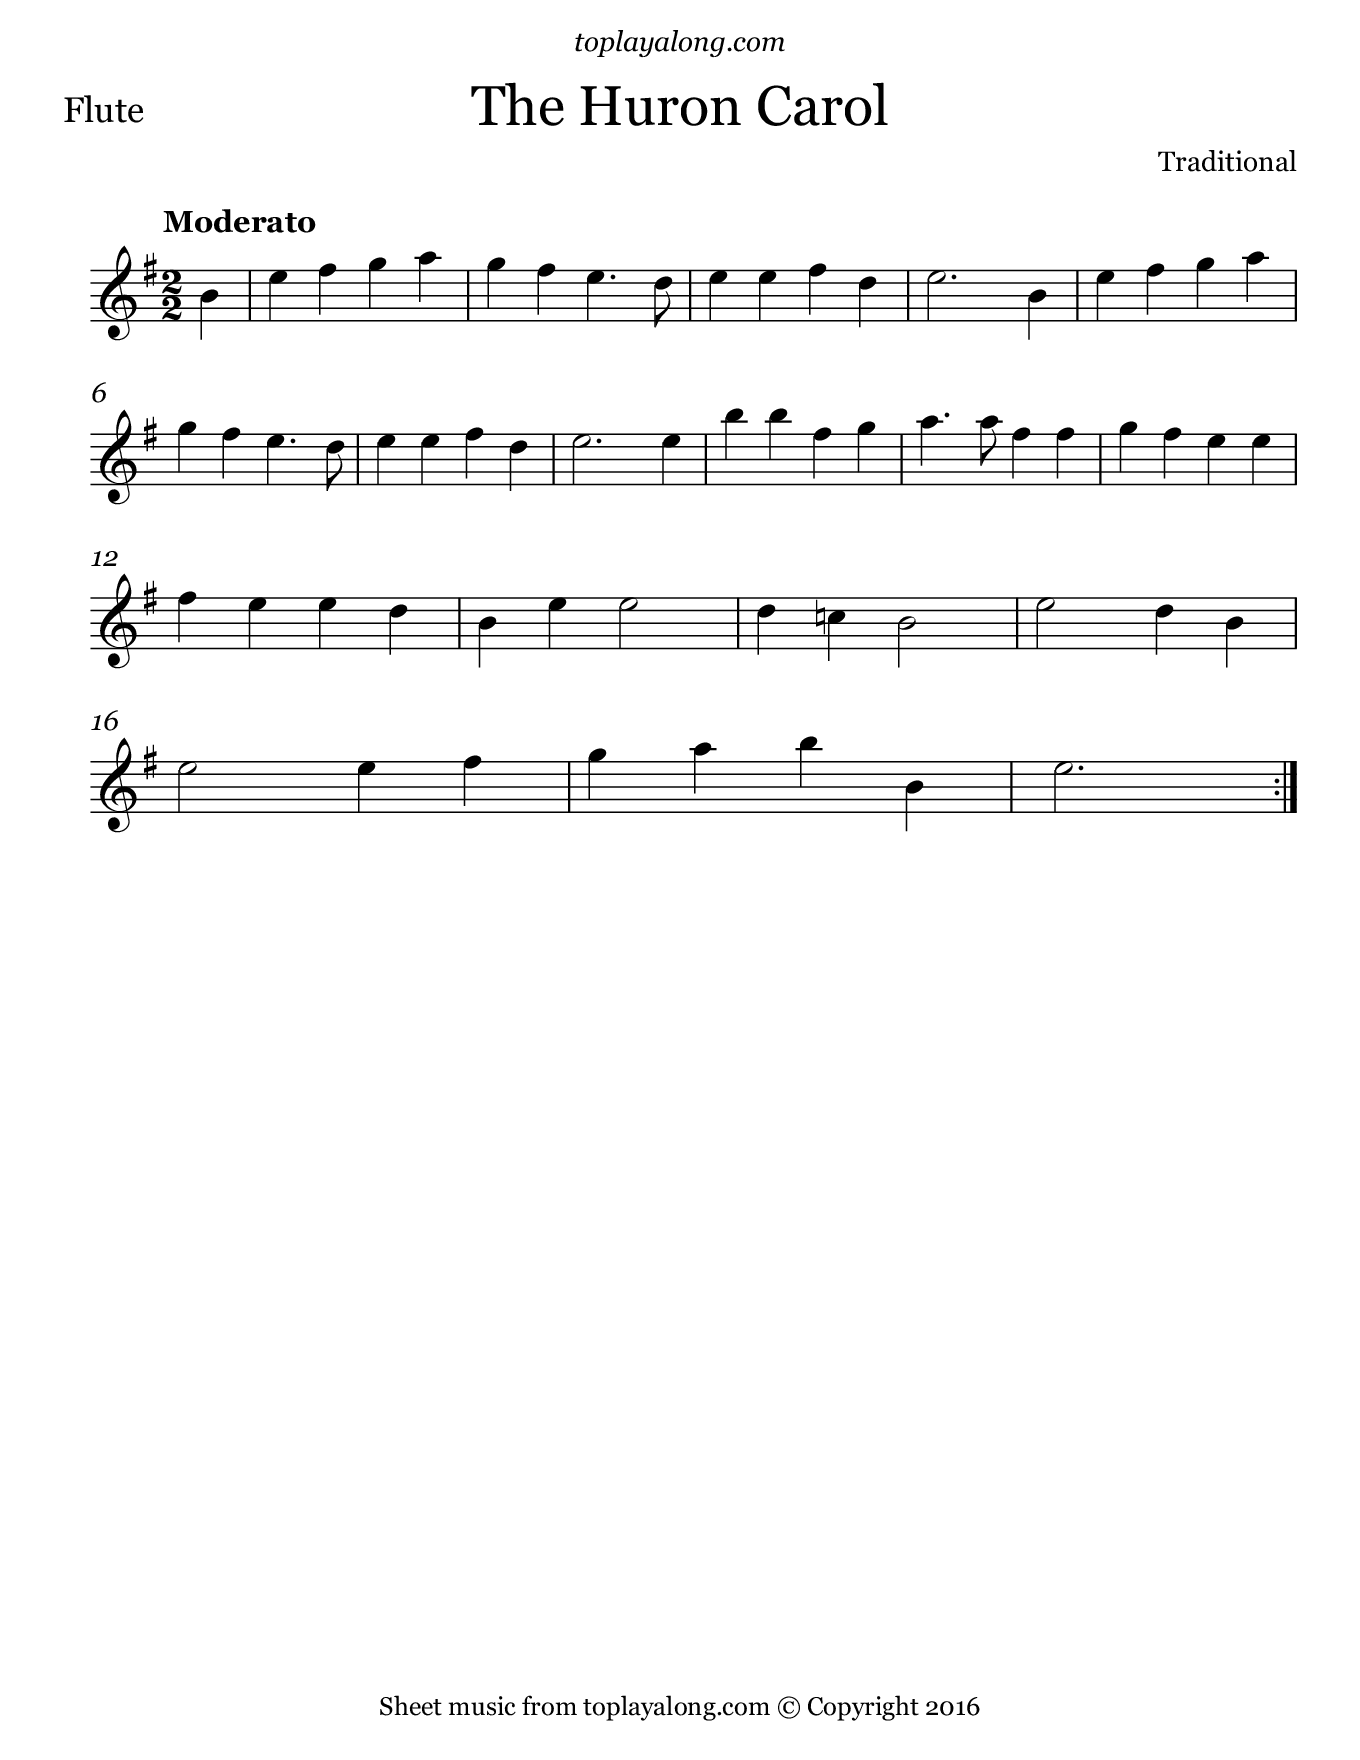 Huron Carol. Sheet music for Flute, page 1.